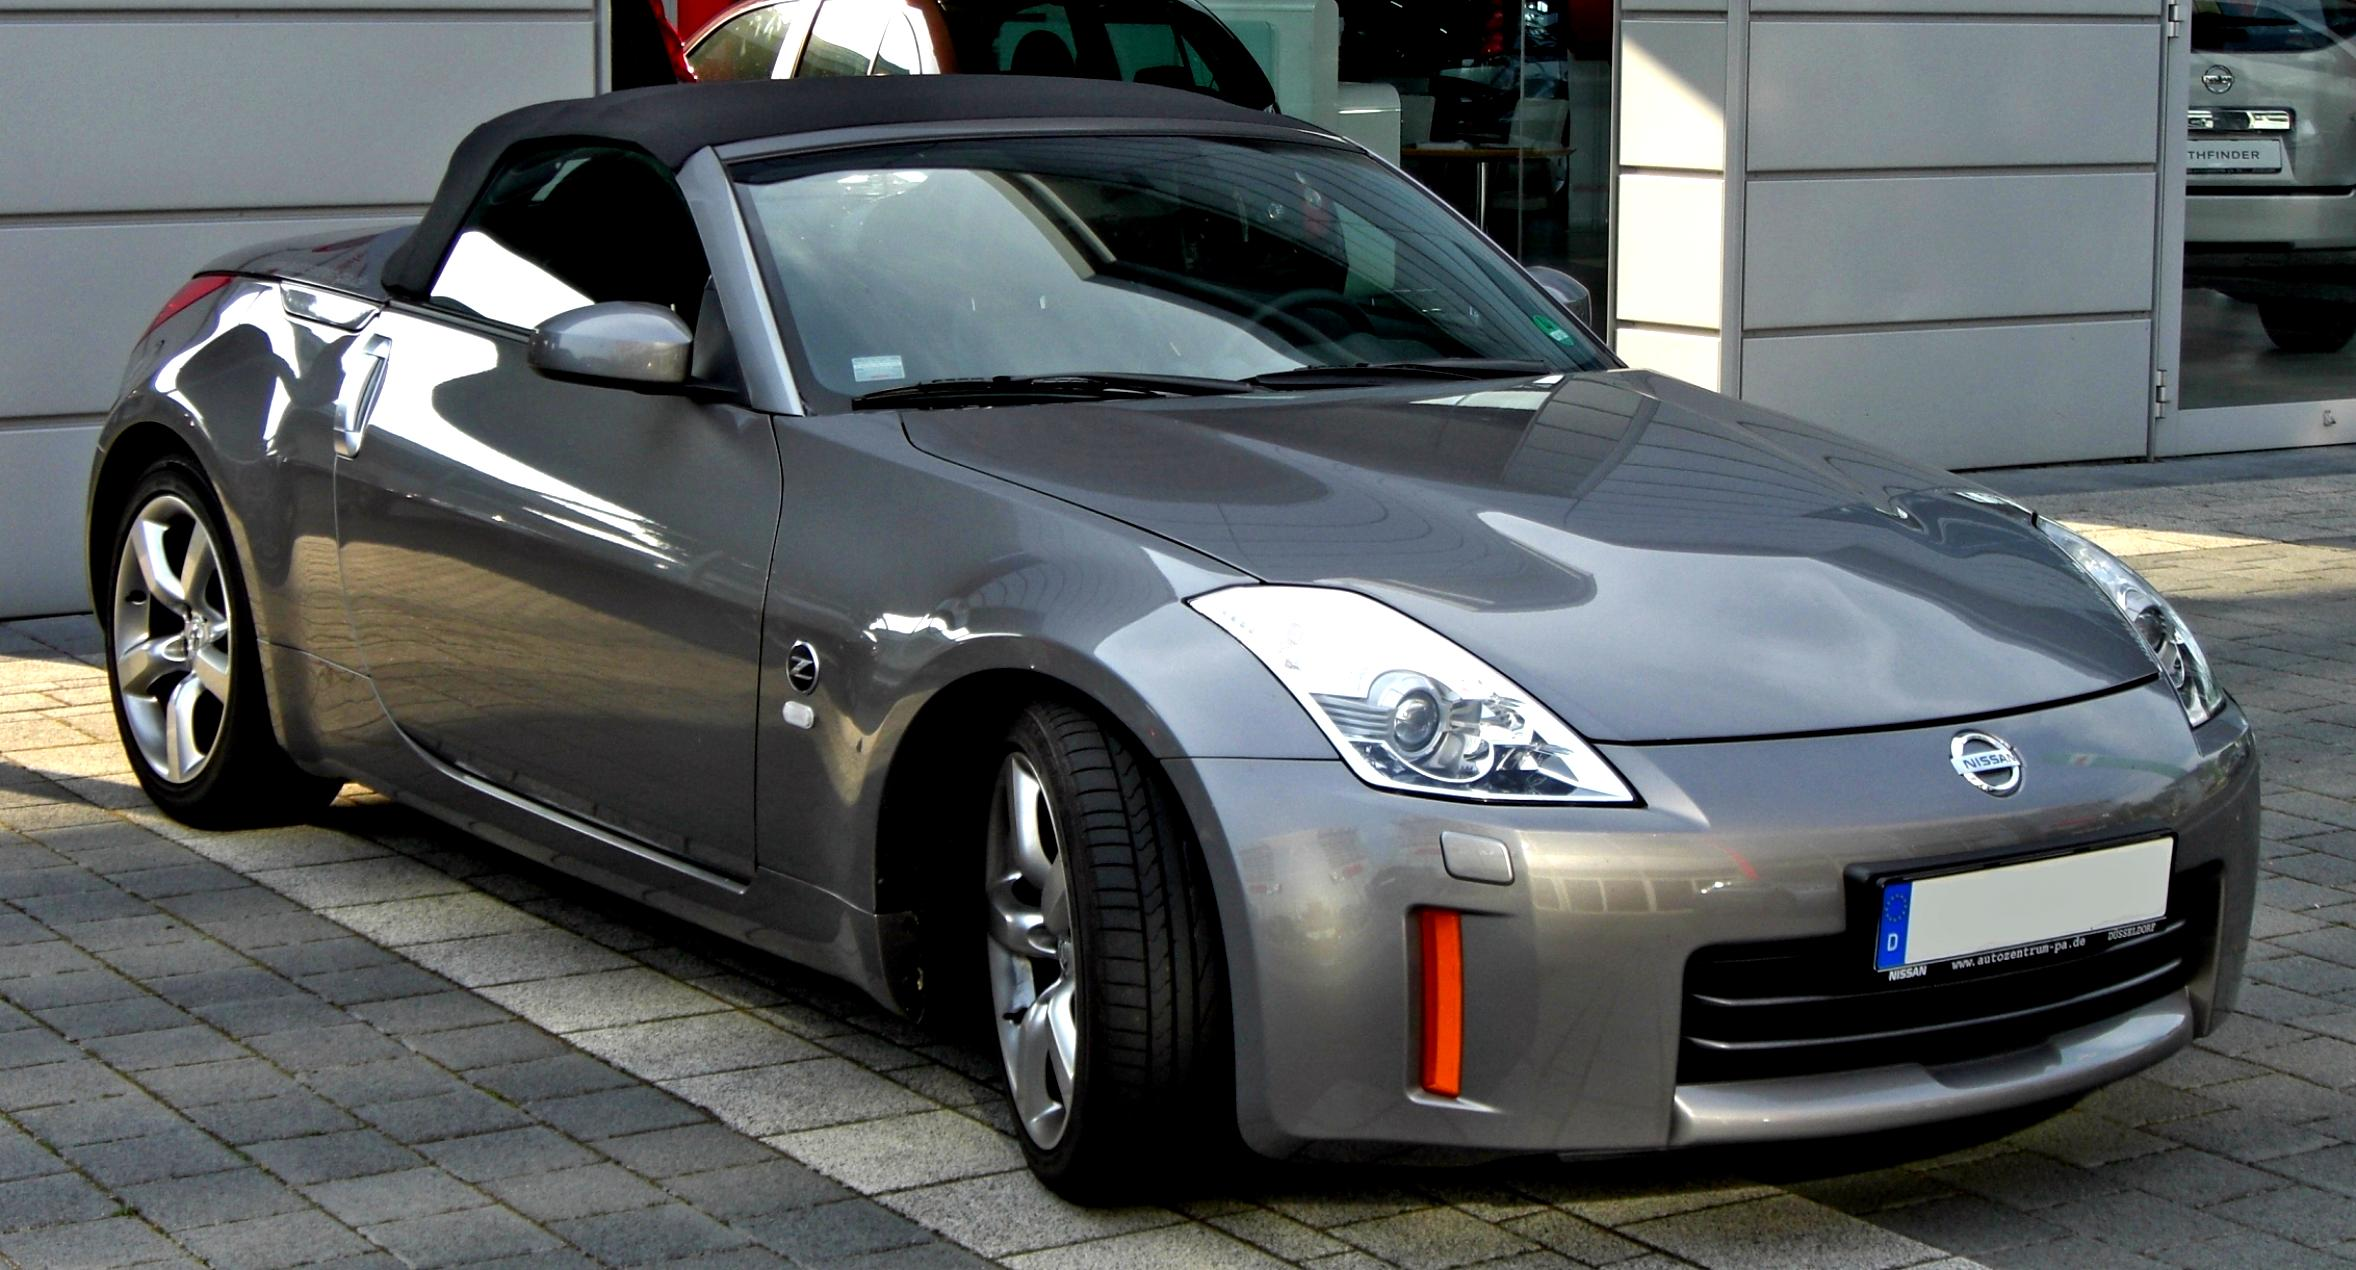 Nissan 350z roadster 2008 on motoimg nissan 350z roadster 2008 2 vanachro Choice Image